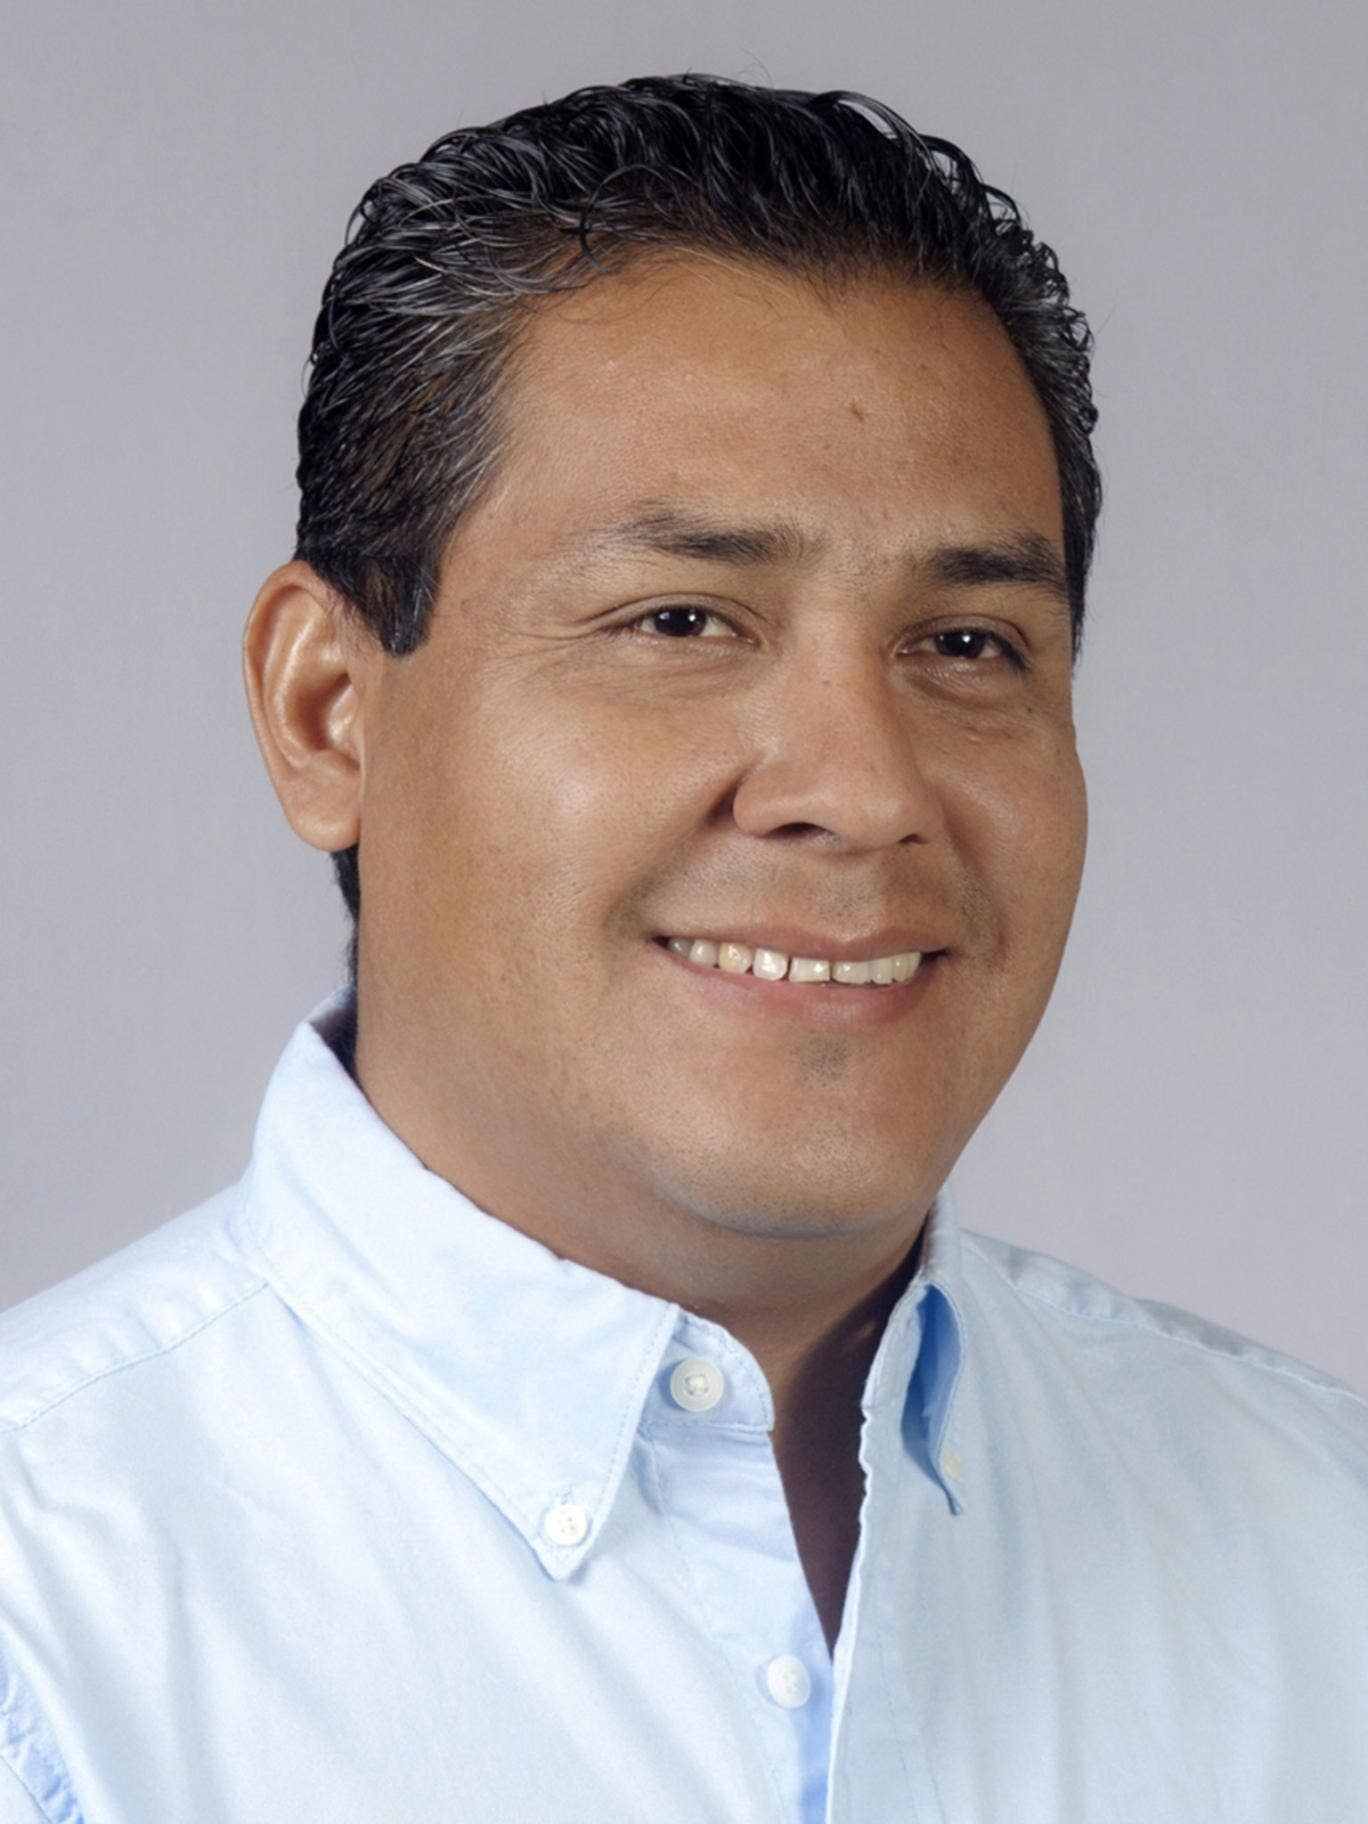 Leninguer Carballido was certified dead by his family in 2010, but recently won an election